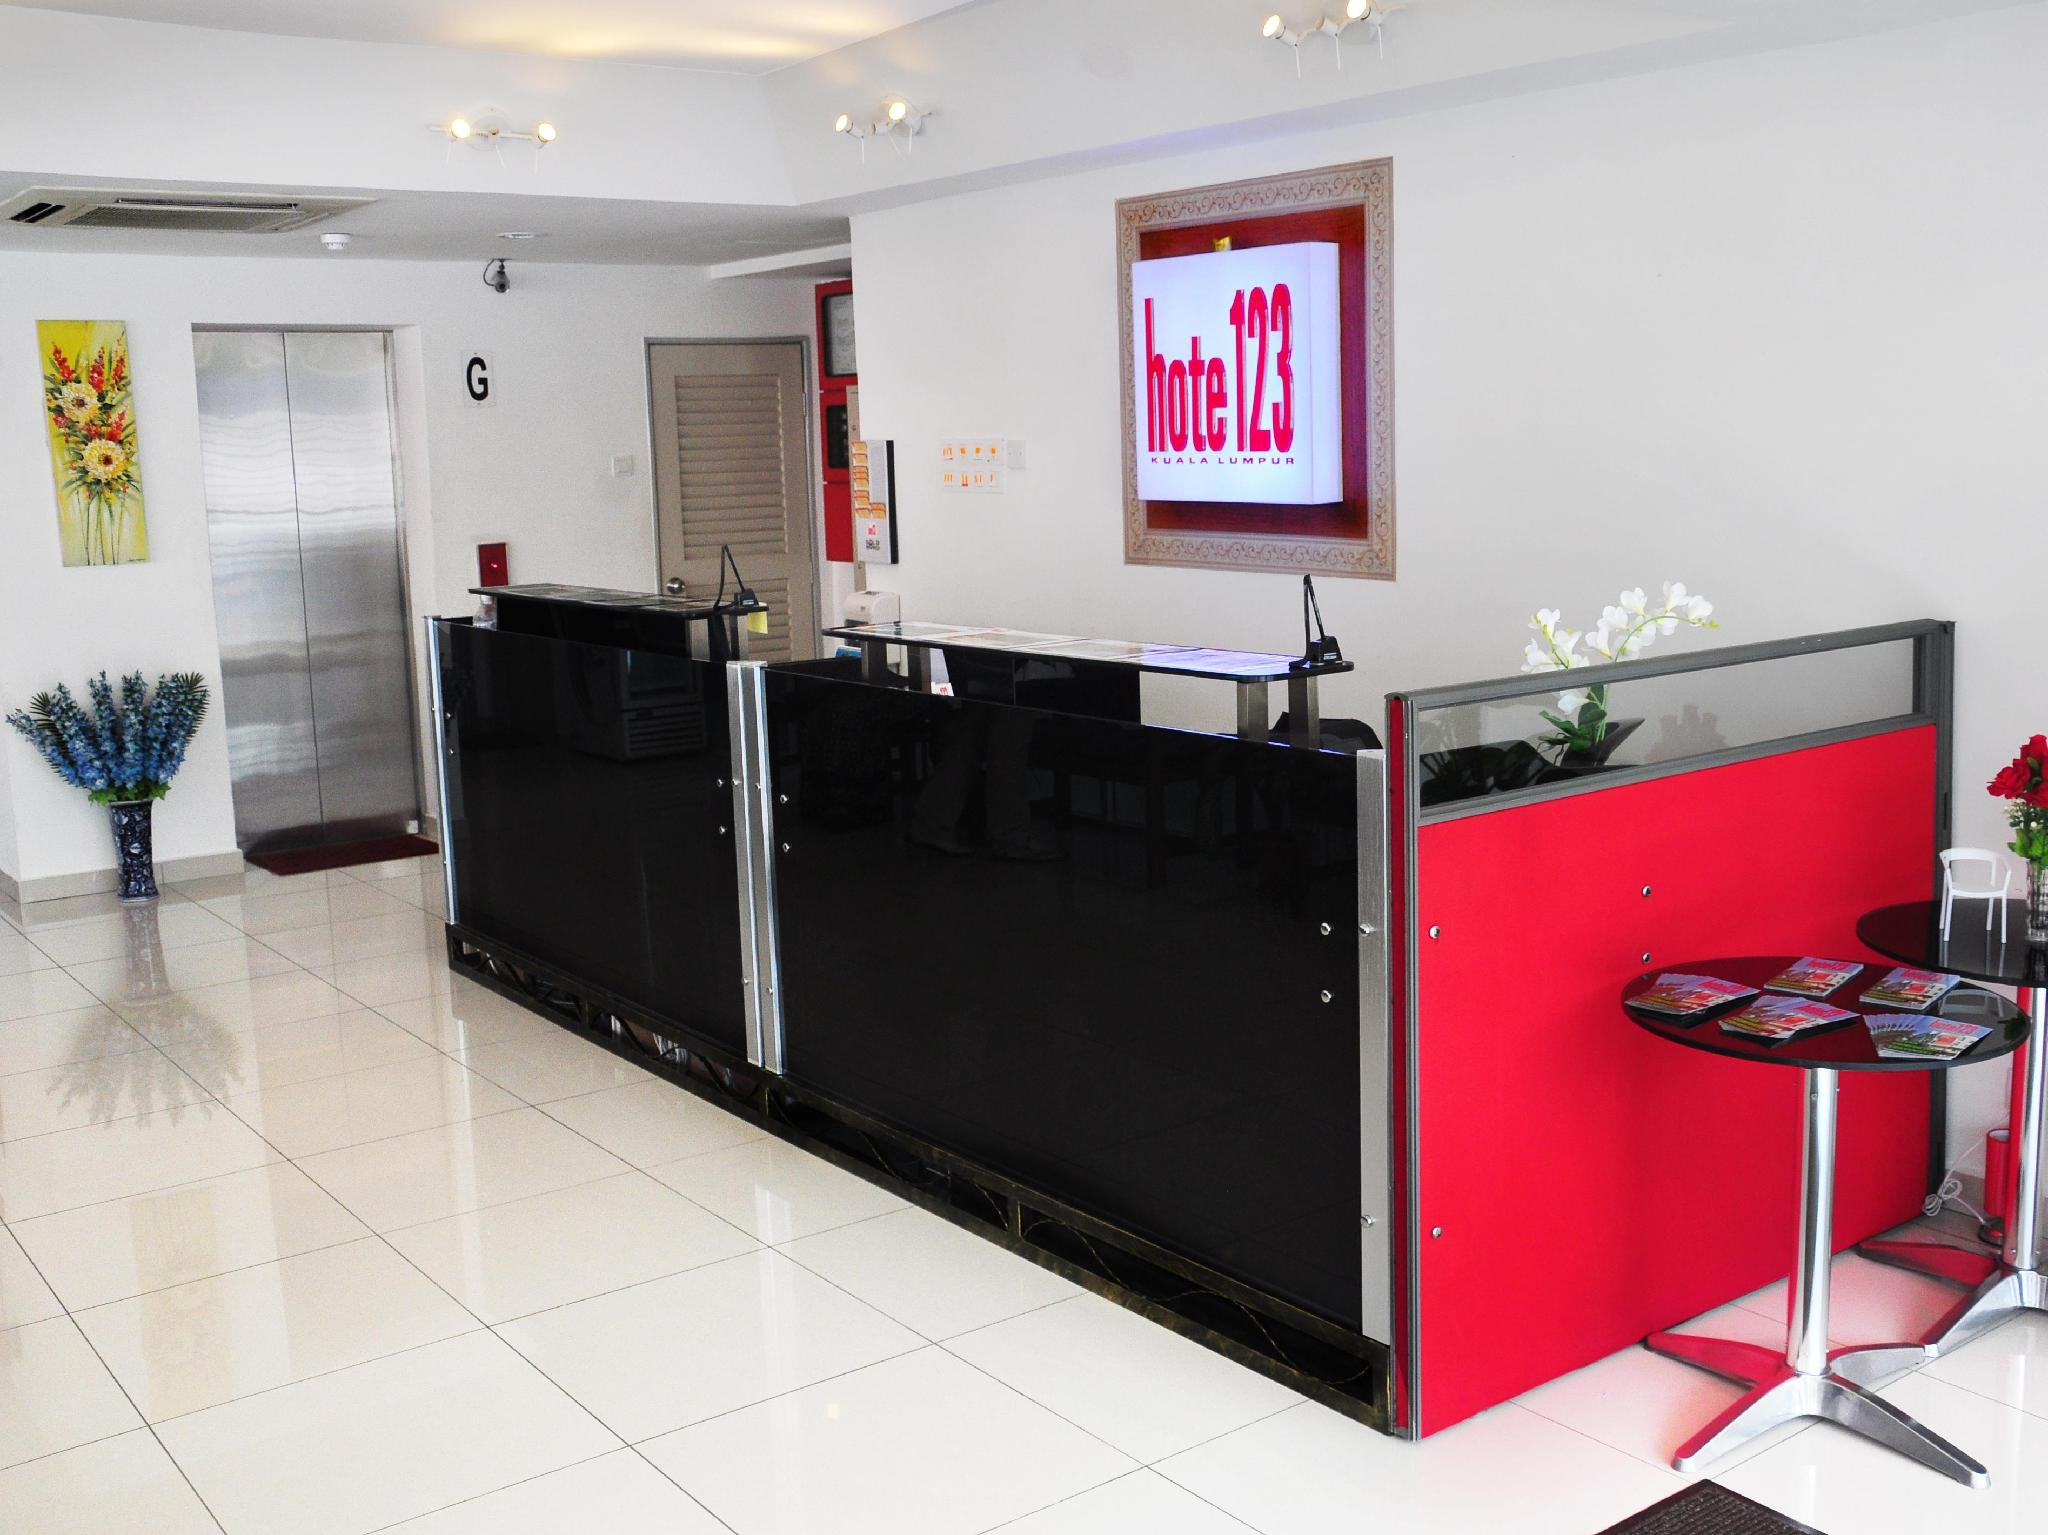 Hote123 - Hotel - Hotels and Accommodation in Malaysia, Asia